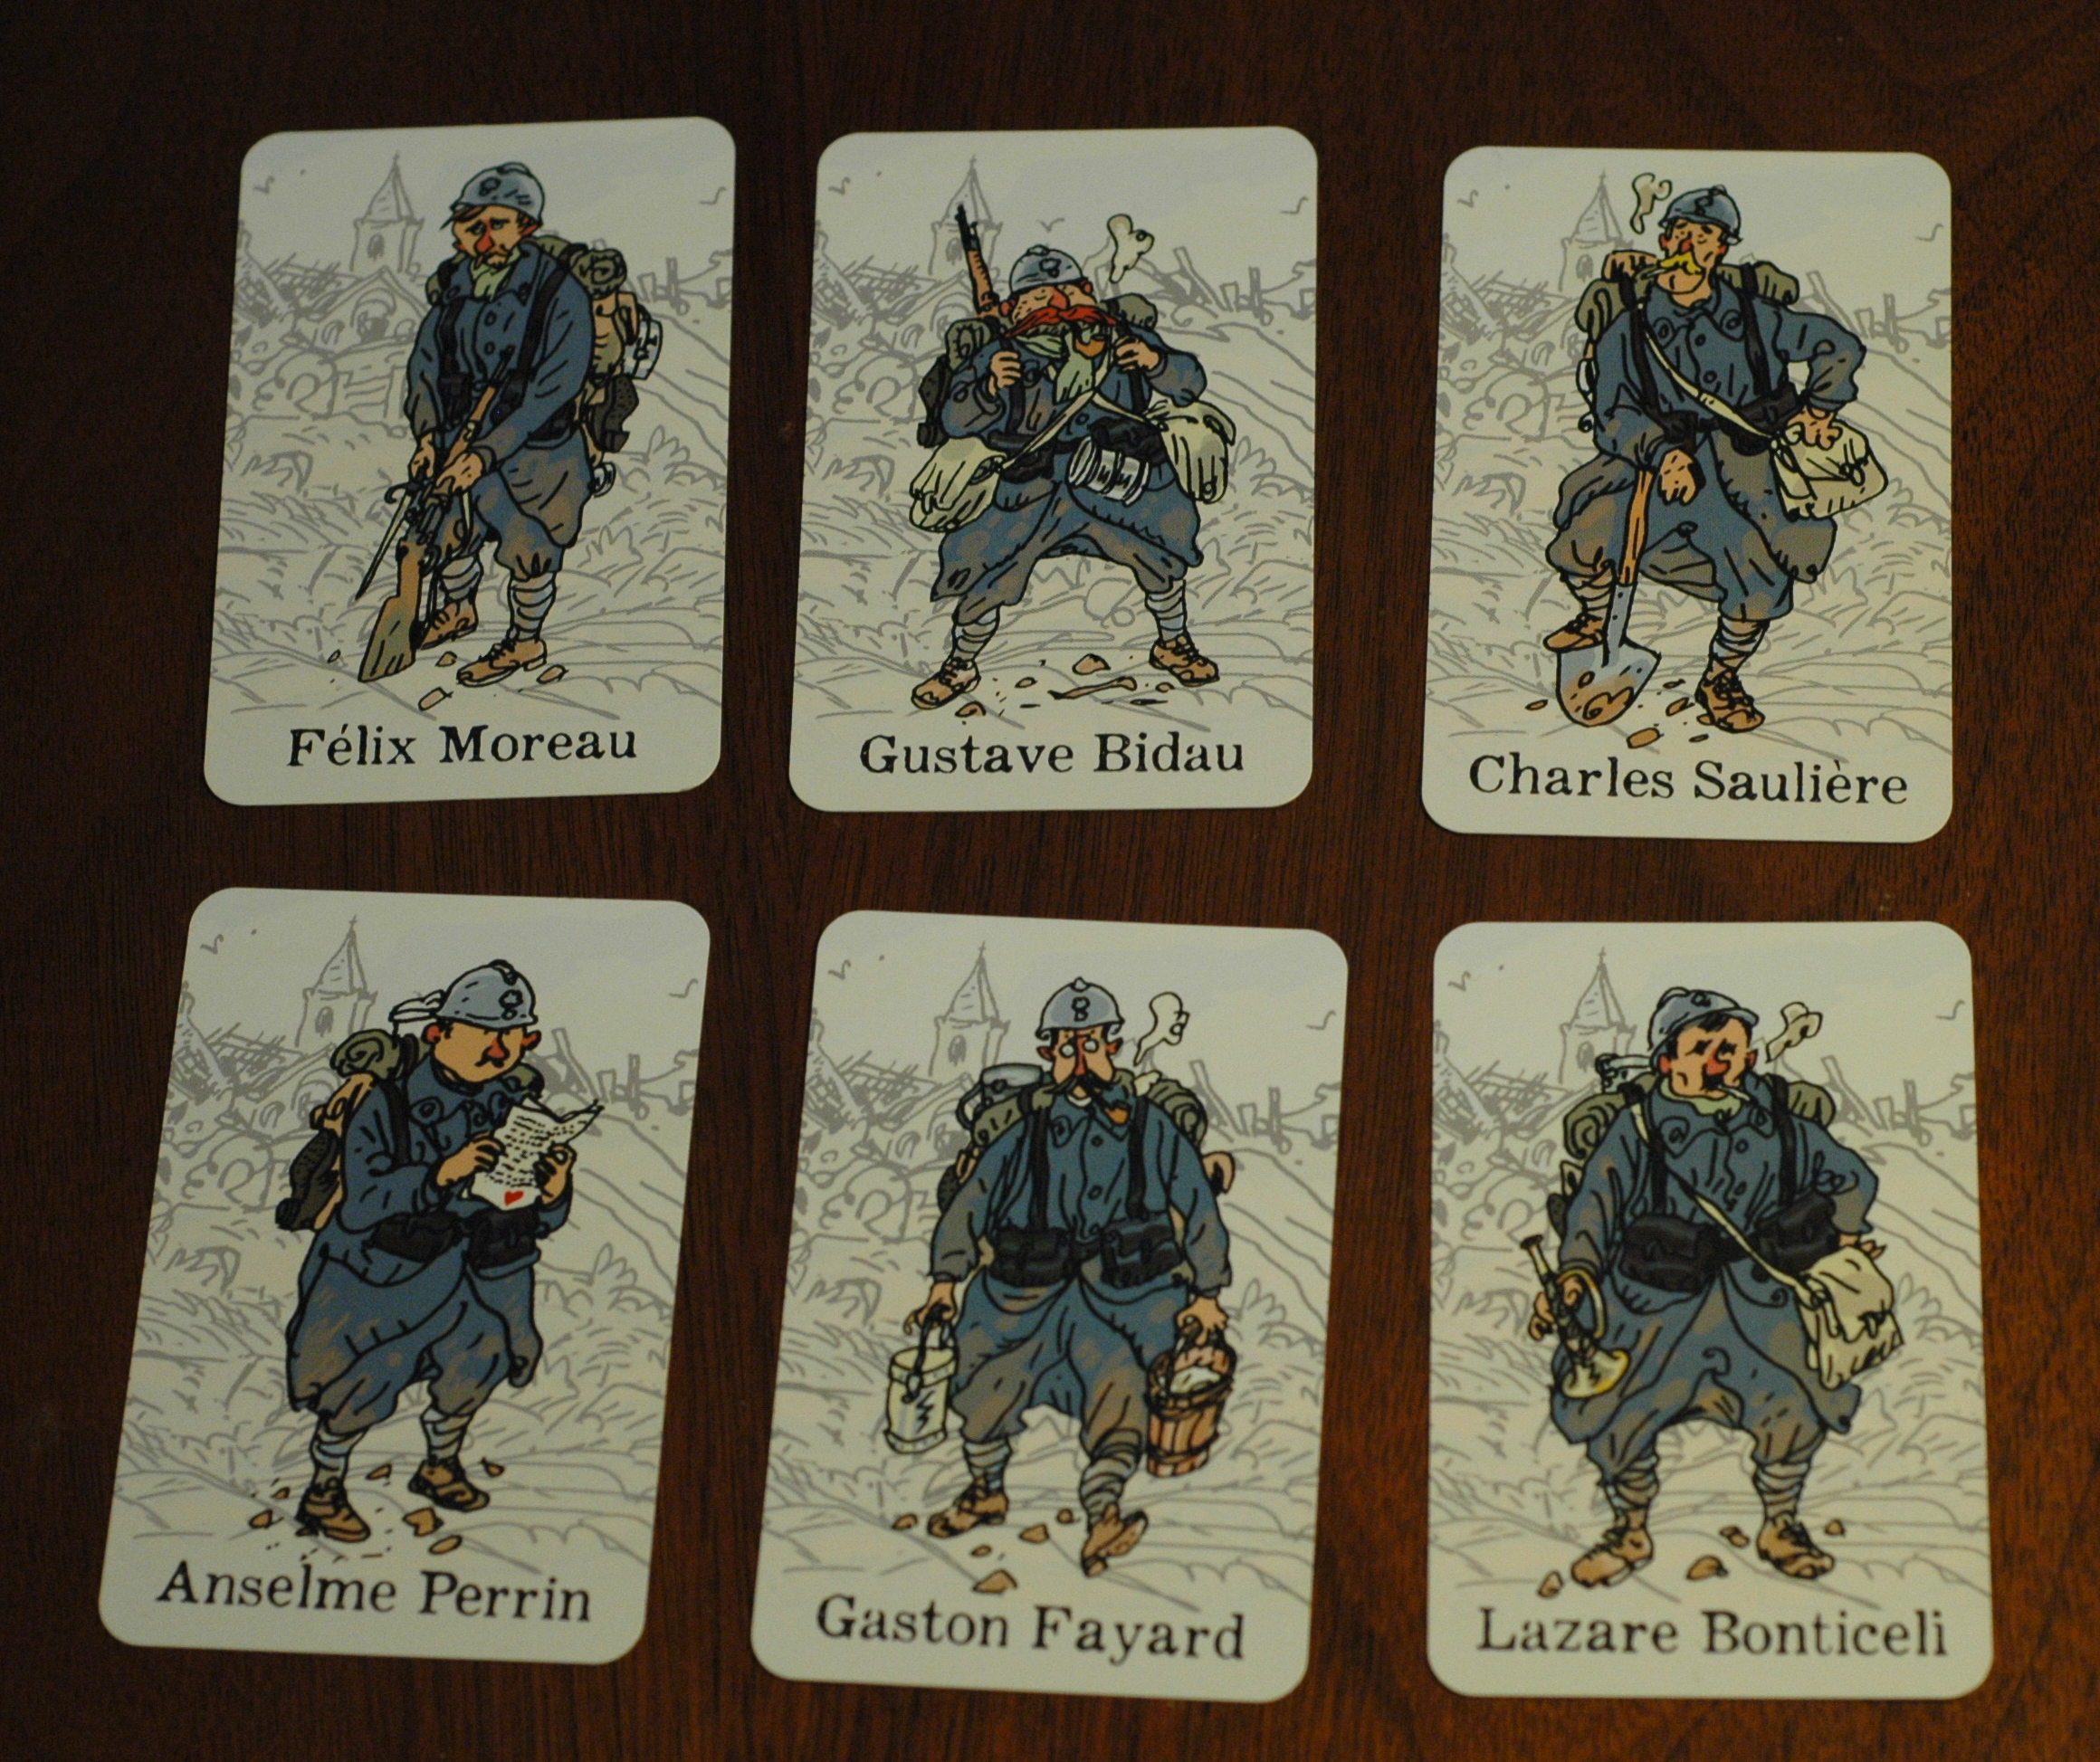 Character cards from the game. Photo used with permission of the author and used for purposes of critique.